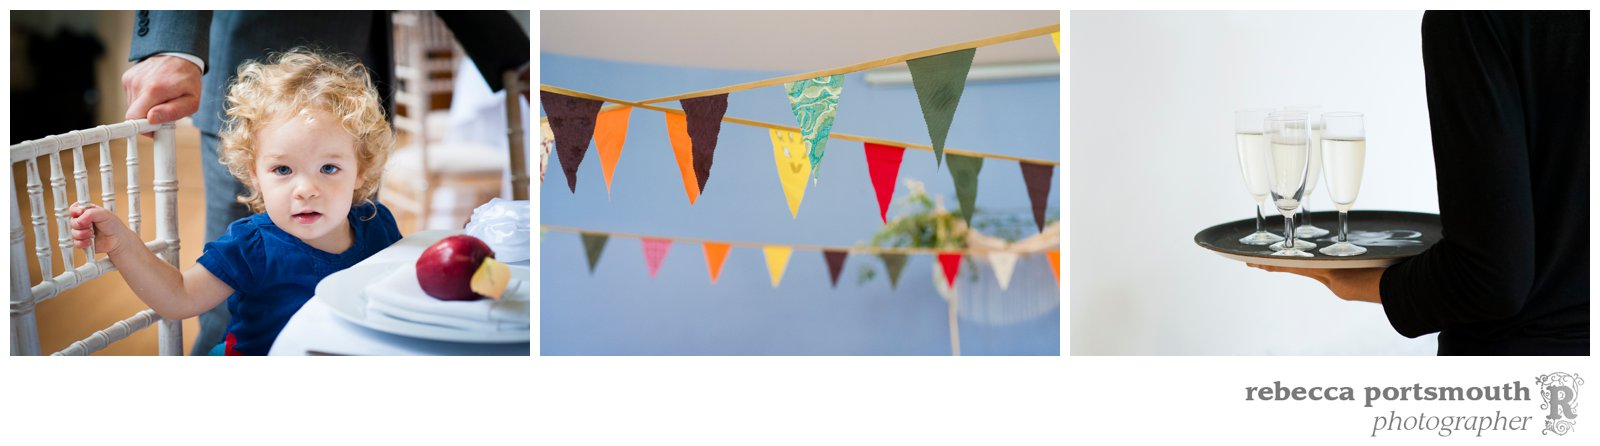 Autumnal bunting made by the bride and her friends decorates their wedding breakfast at their homemade wedding.